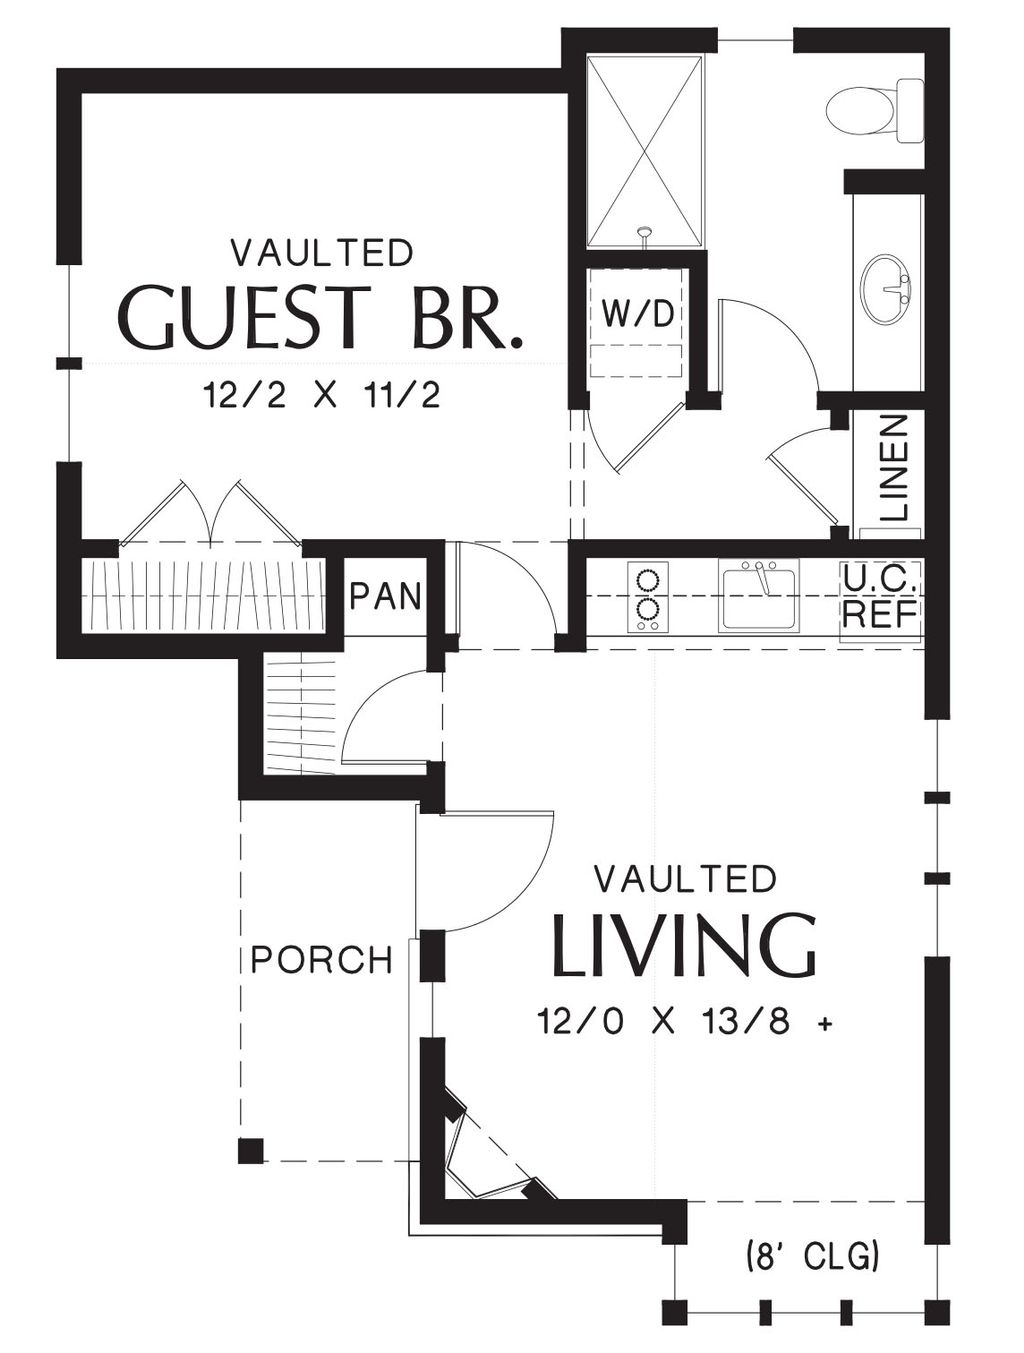 544 Square Feet 1 Bedroom 1 00 Bathroom 0 Garage Sp105411 furthermore Hwepl73197 together with Porch Planning furthermore Deck Floor Plans furthermore Small House Plans. on front porch roof drawings